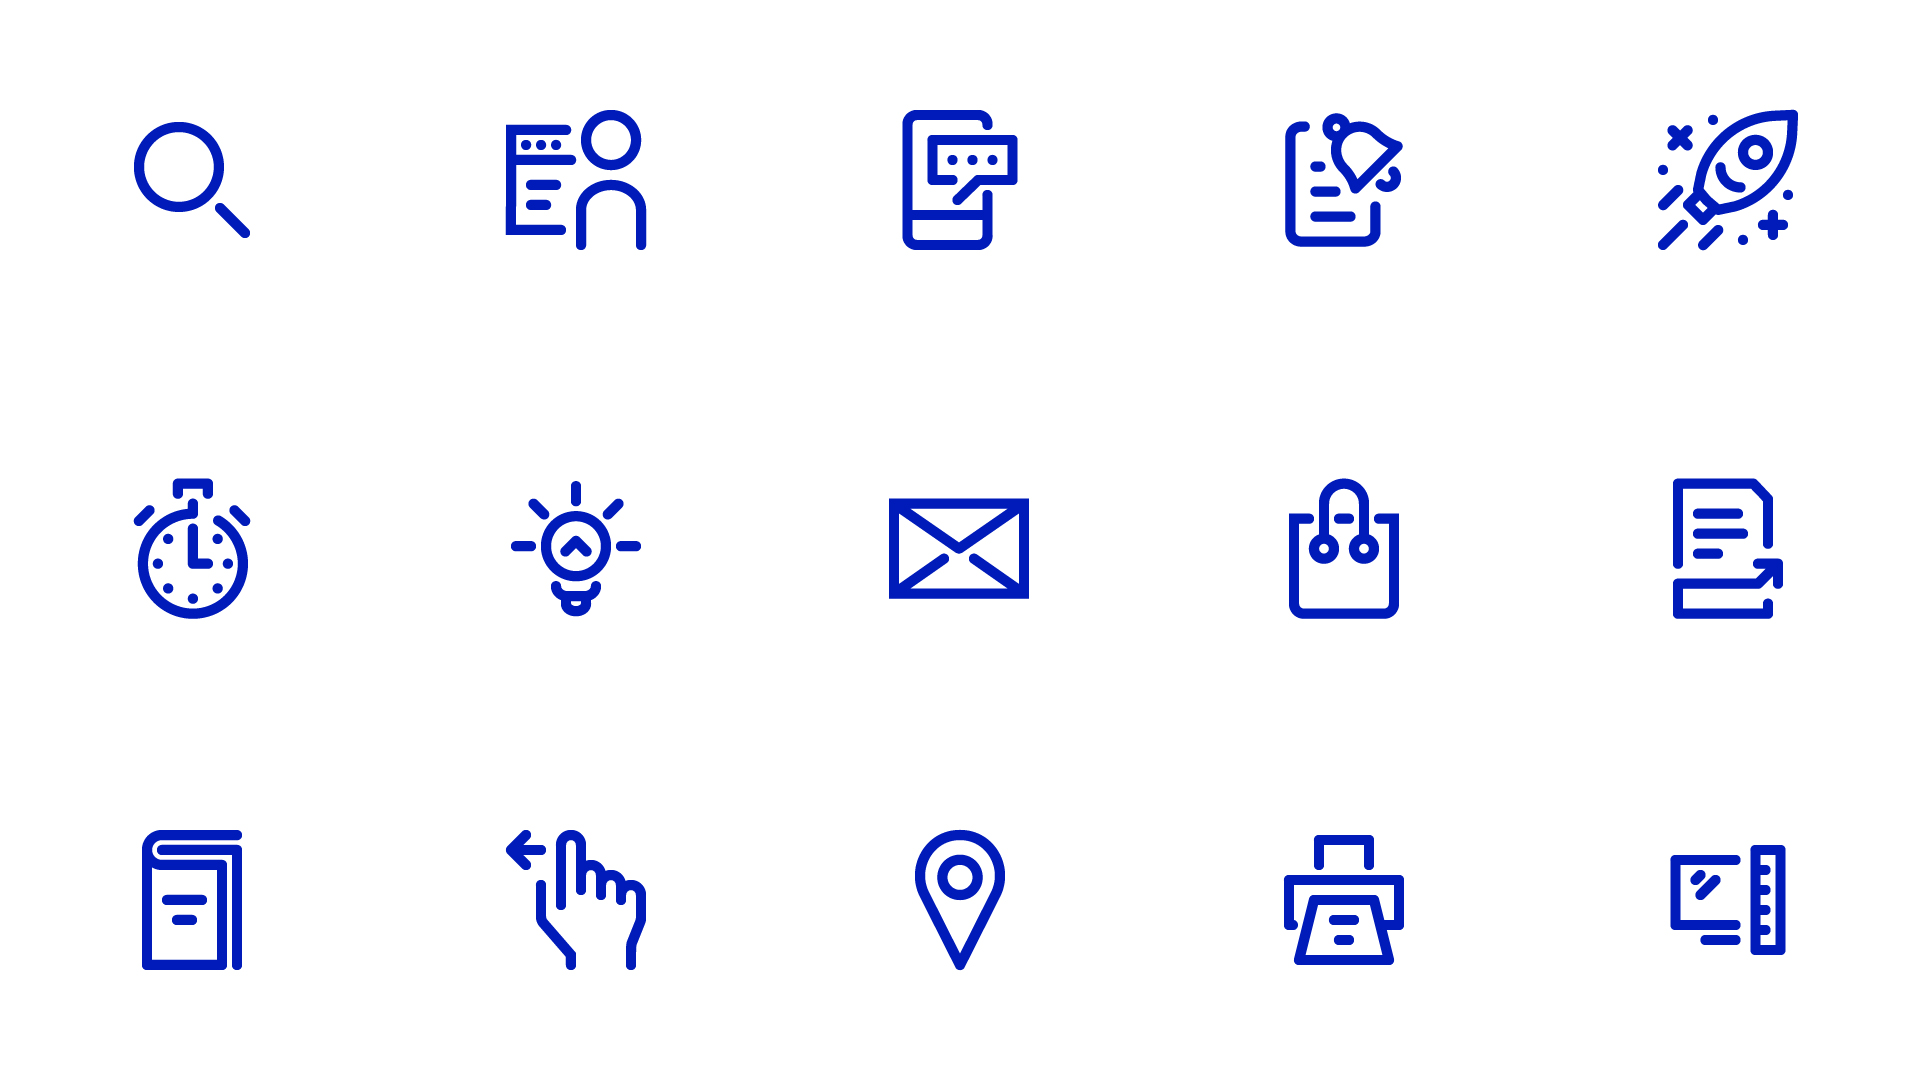 1Icon_Overview_01